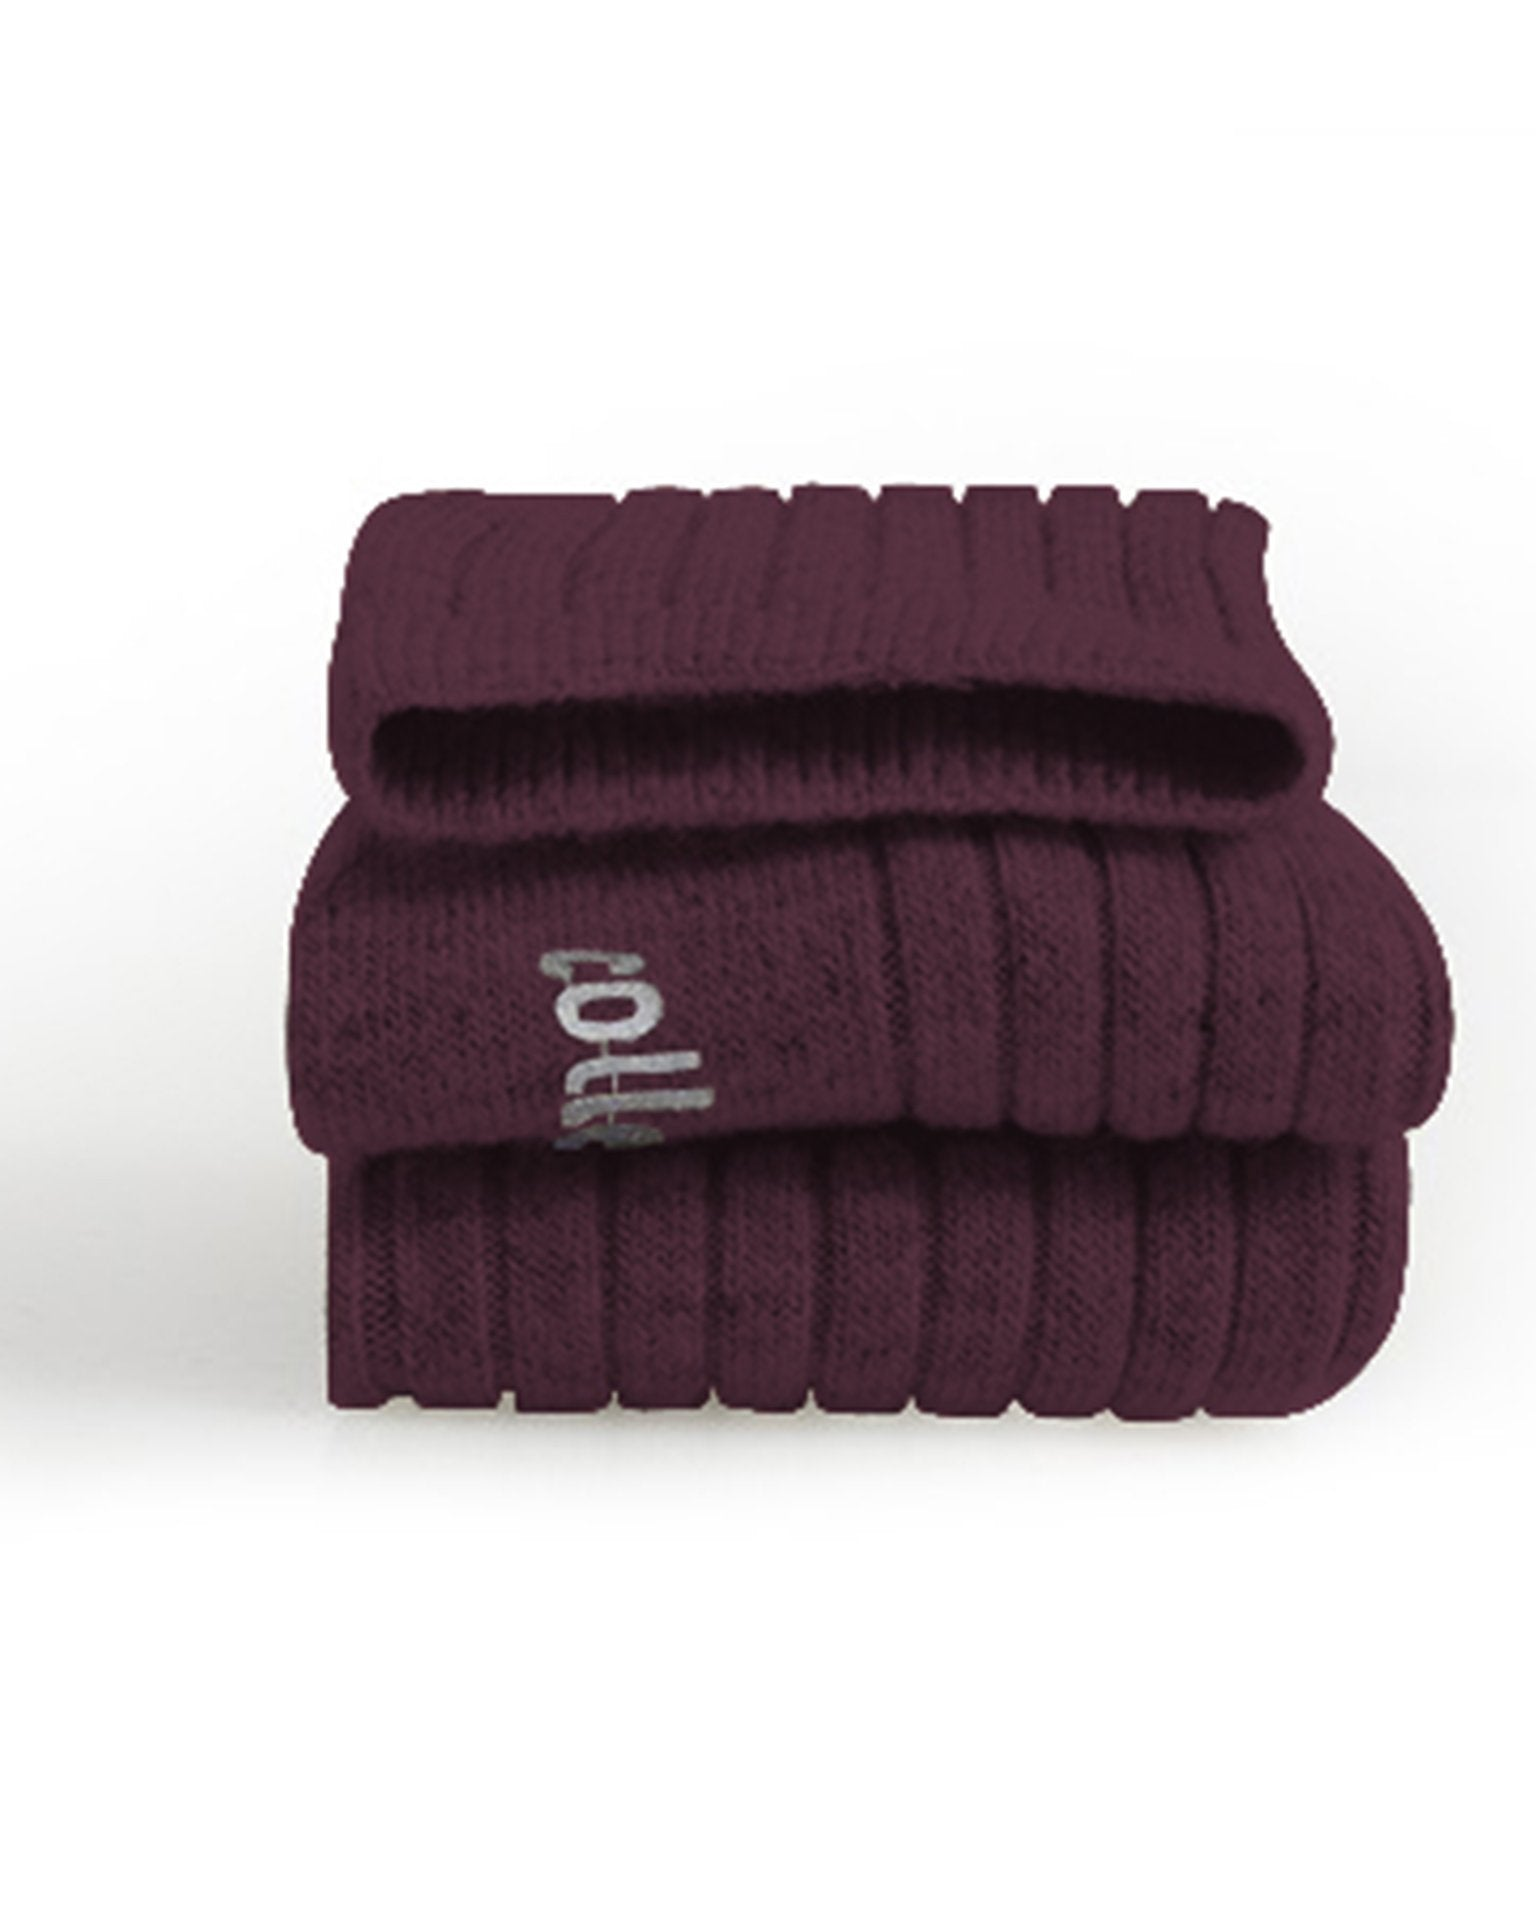 Little collegien accessories wool + cashmere socks in raisin